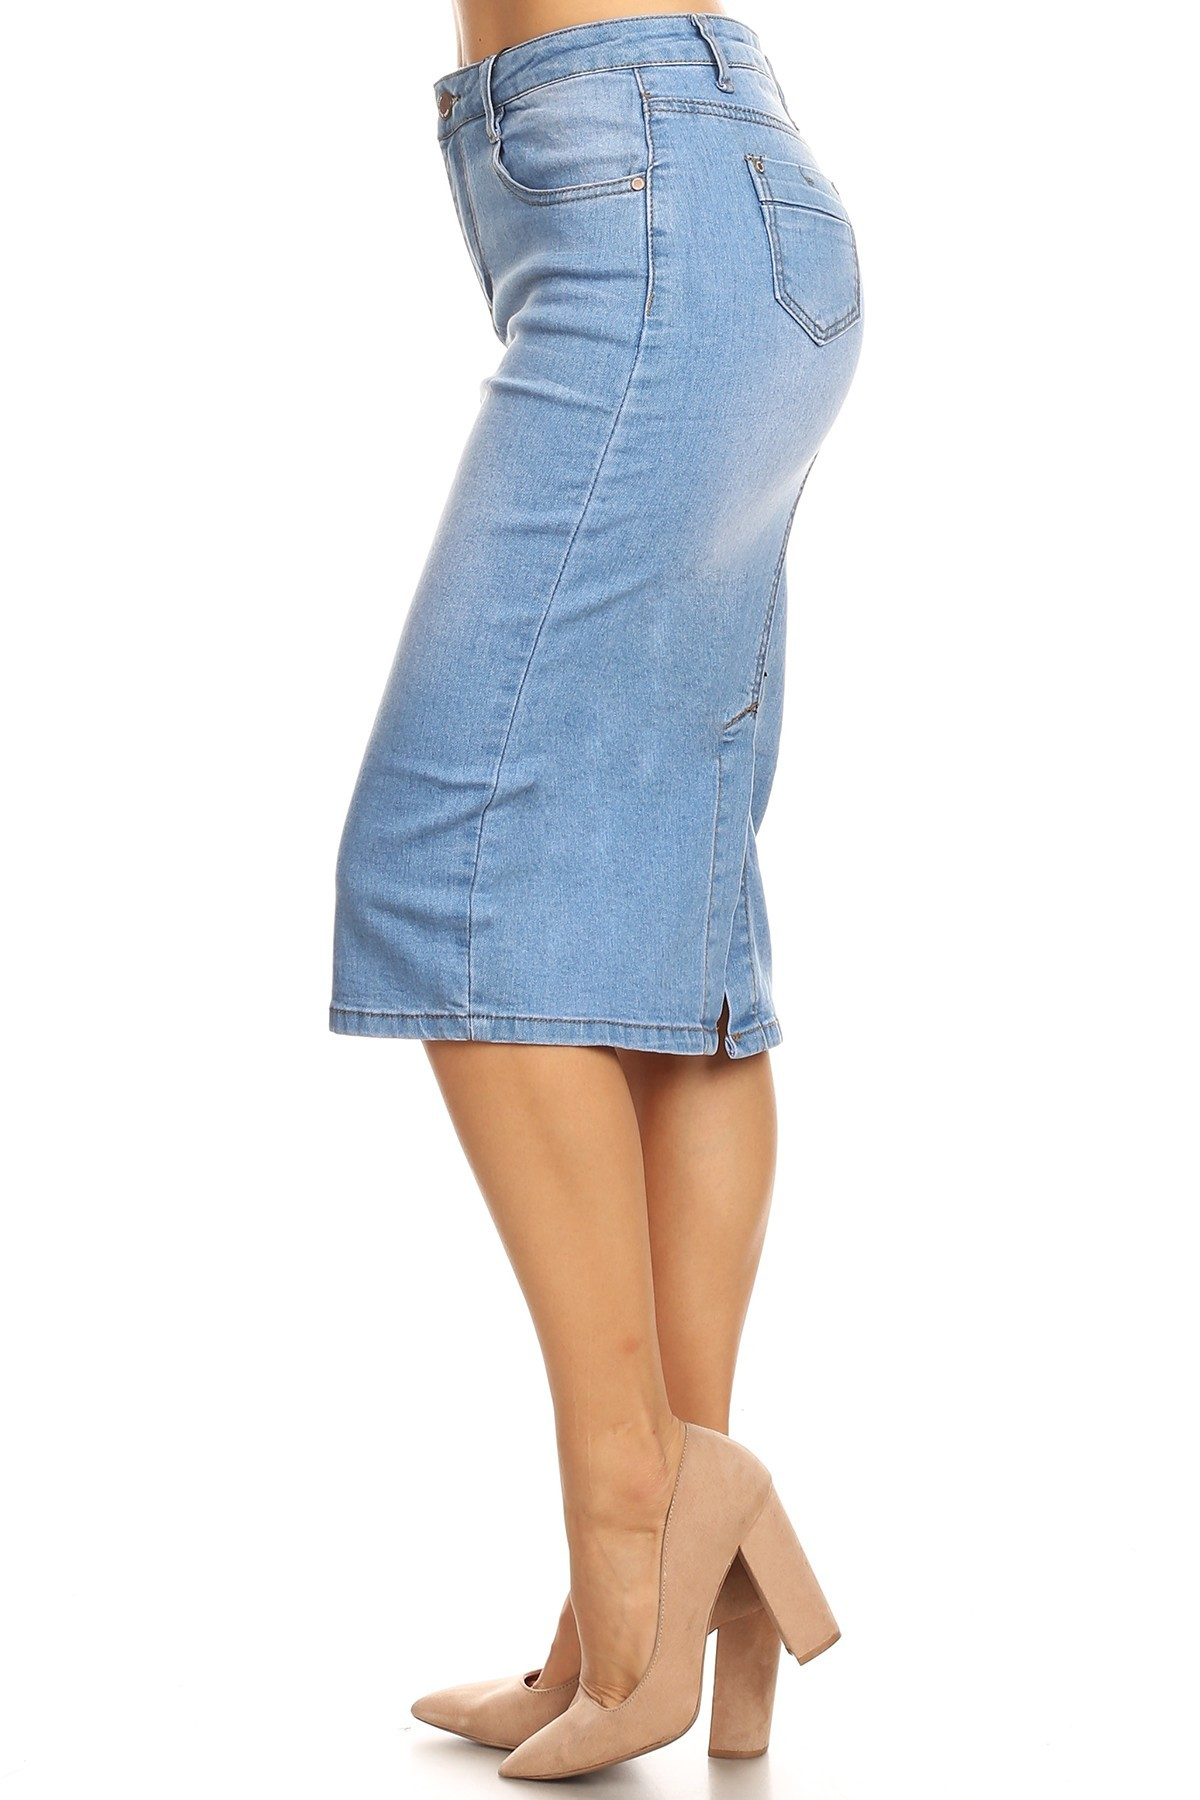 great deals cheap for sale lace up in Details about Womens Plus/Juniors Mid Waist Below Knee Length Denim Skirt  in Pencil Silhouette